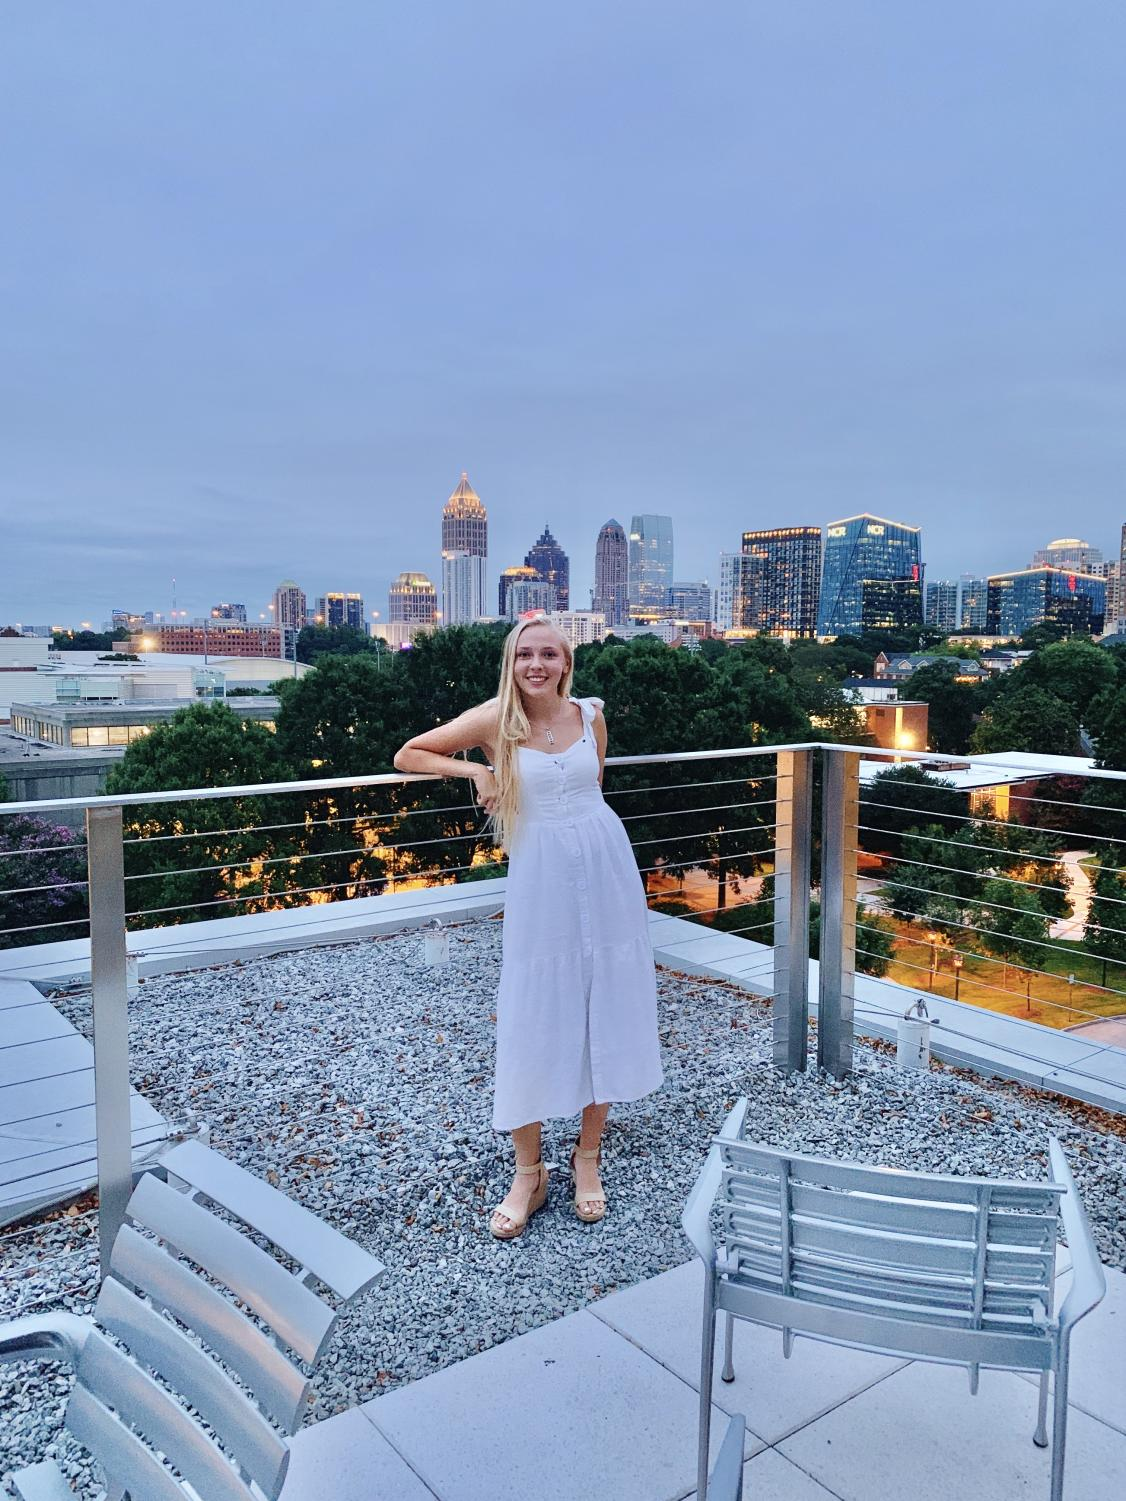 Brown stands on the roof of the Clough undergraduate learning center (CULC) after her first week at Tech. Many students study outside here.